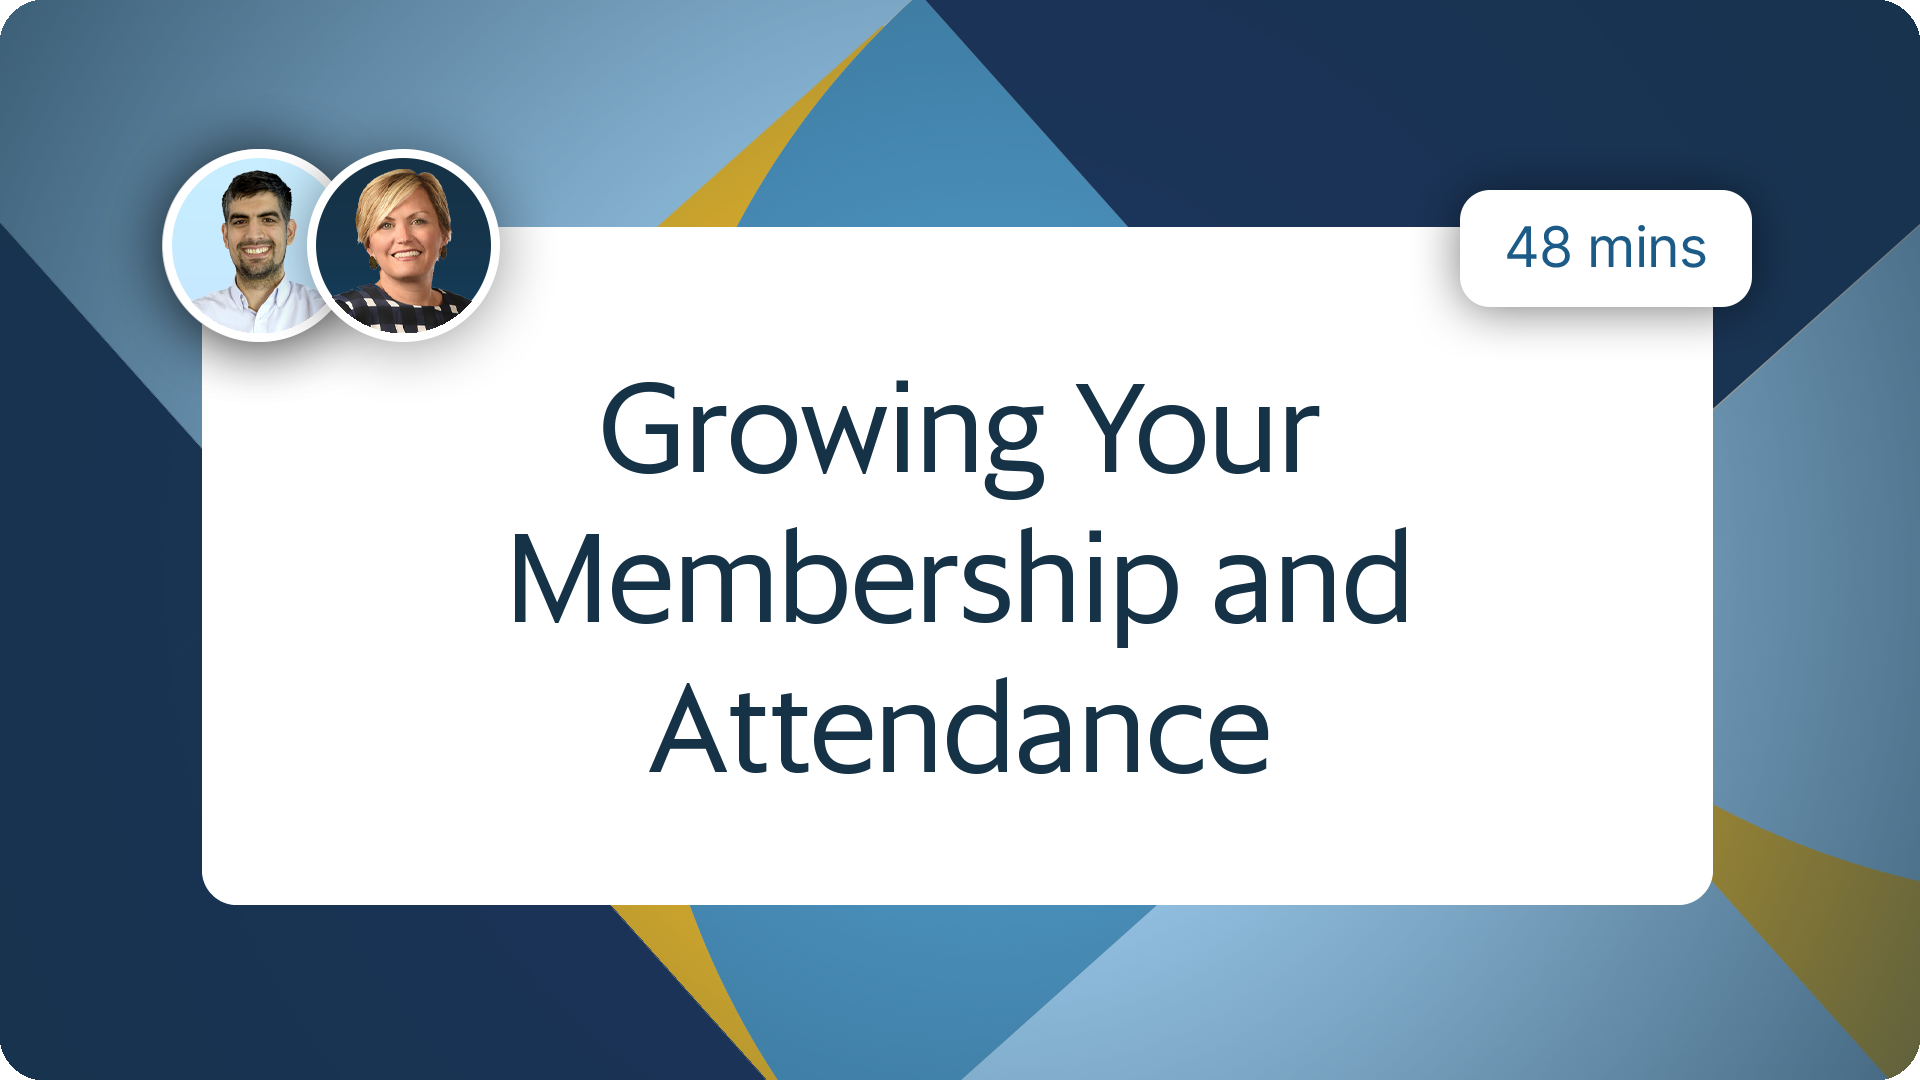 Growing Your Membership & Attendance